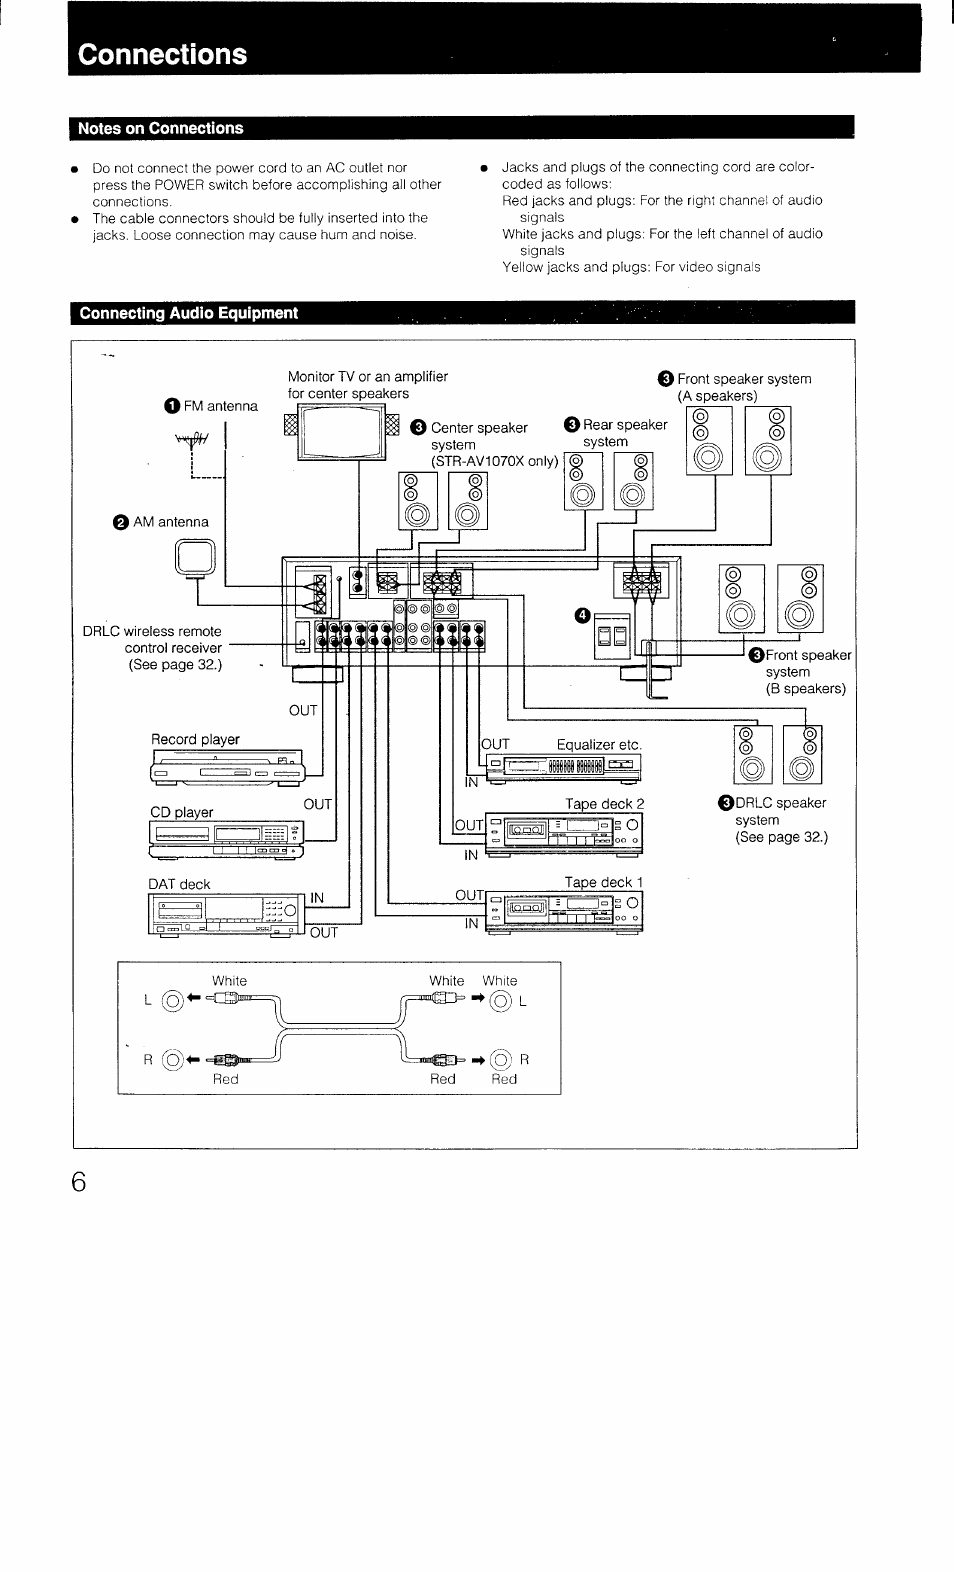 hight resolution of connections notes on connections connecting audio equipment sony str av1070x user manual page 6 43